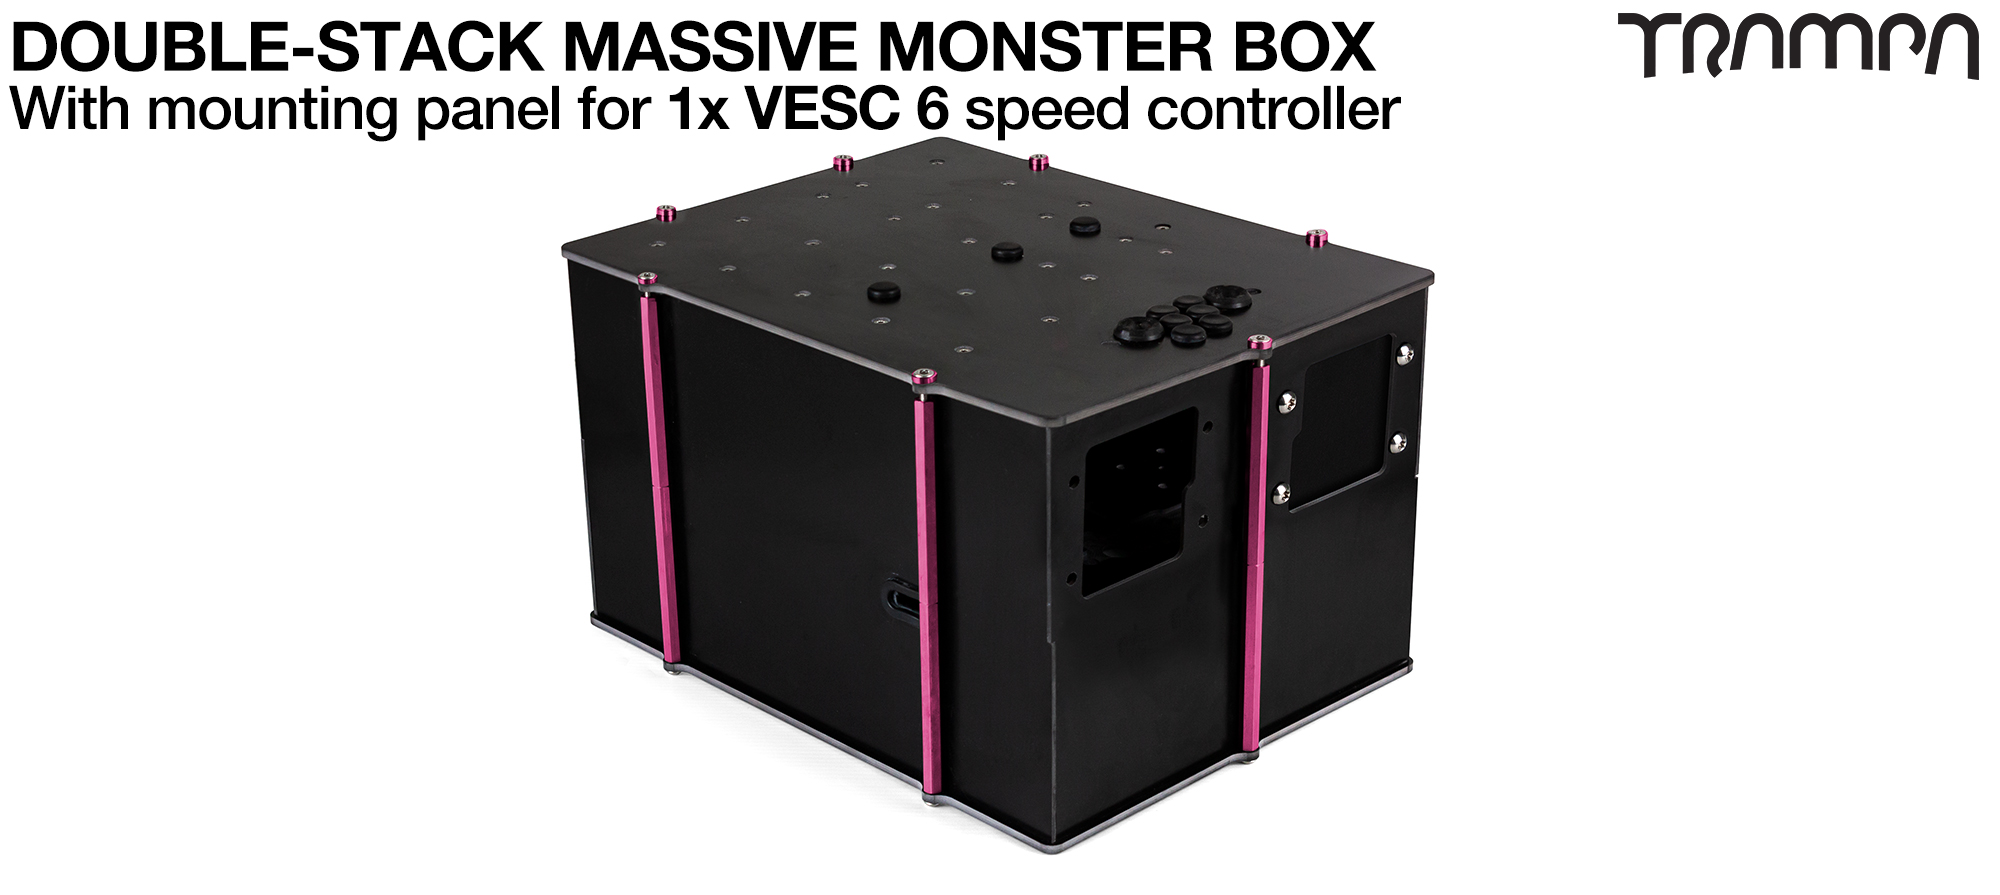 1WD DOUBLE STACK MASSIVE MONSTER Box with 1x VESC 6 Mounting Panel for 1WD